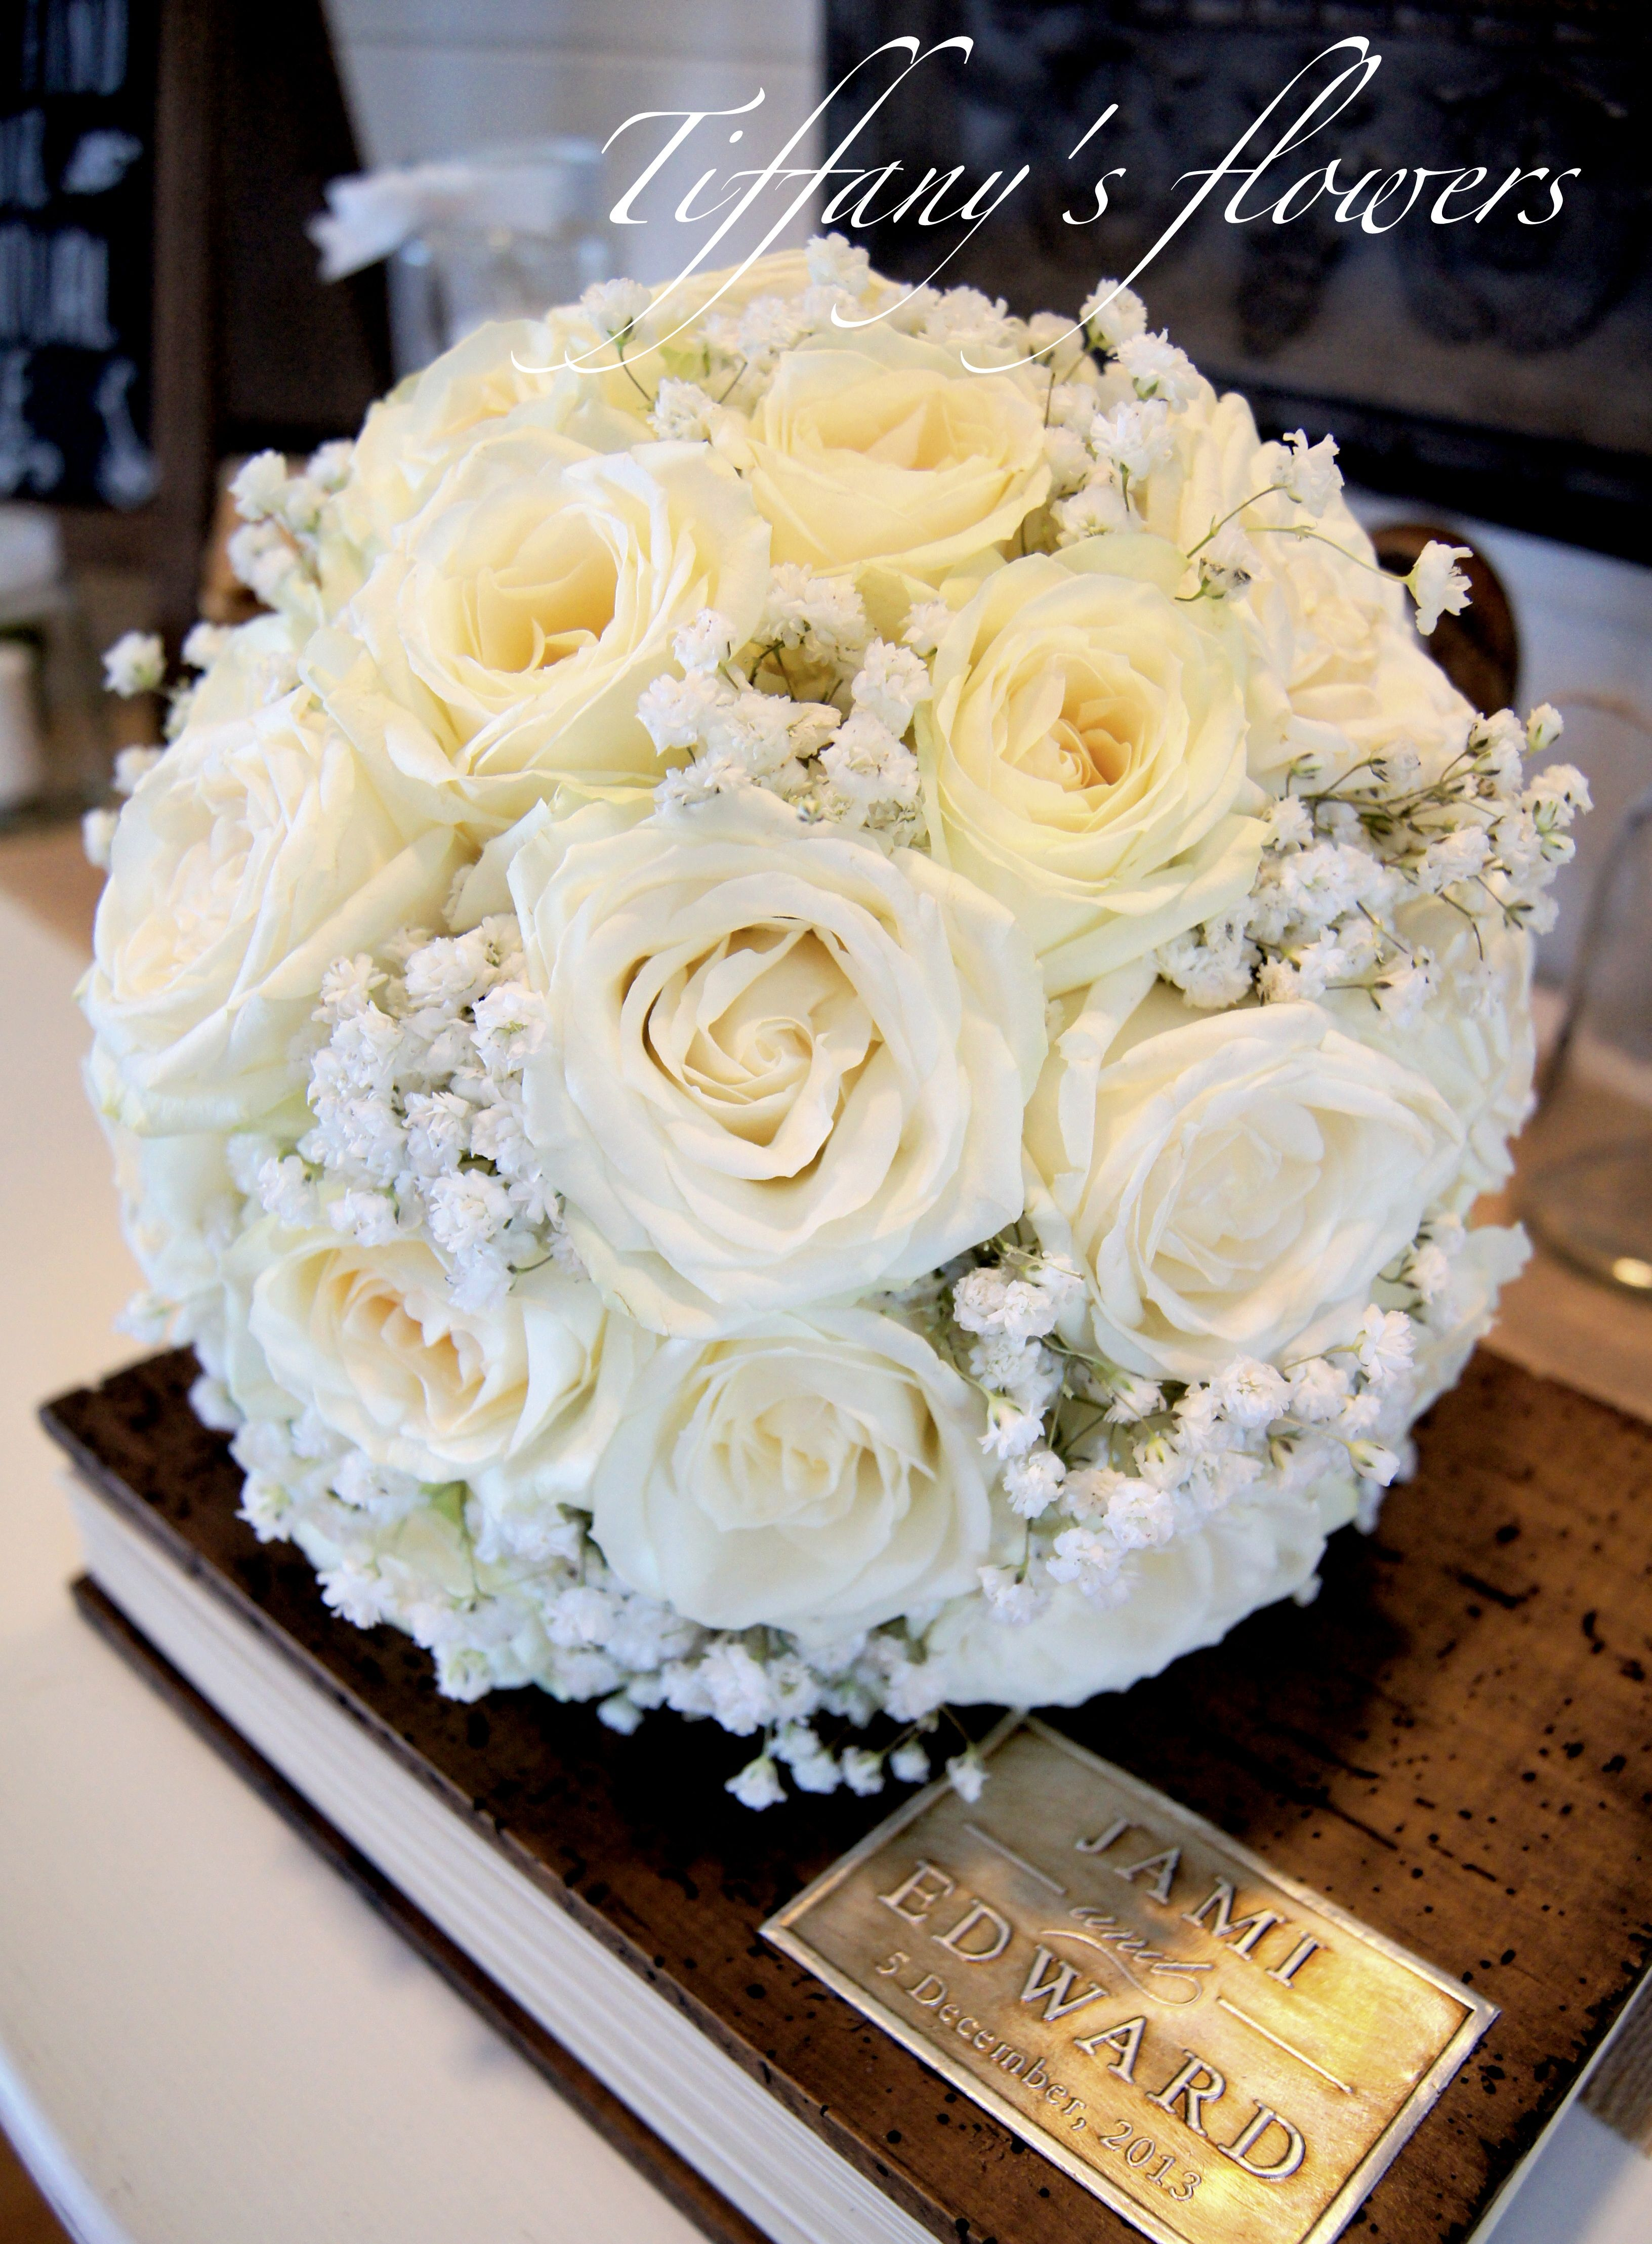 A Classic Ivory Roses Babys Breath Just Beautiful Designed By Tiffanys Flowers